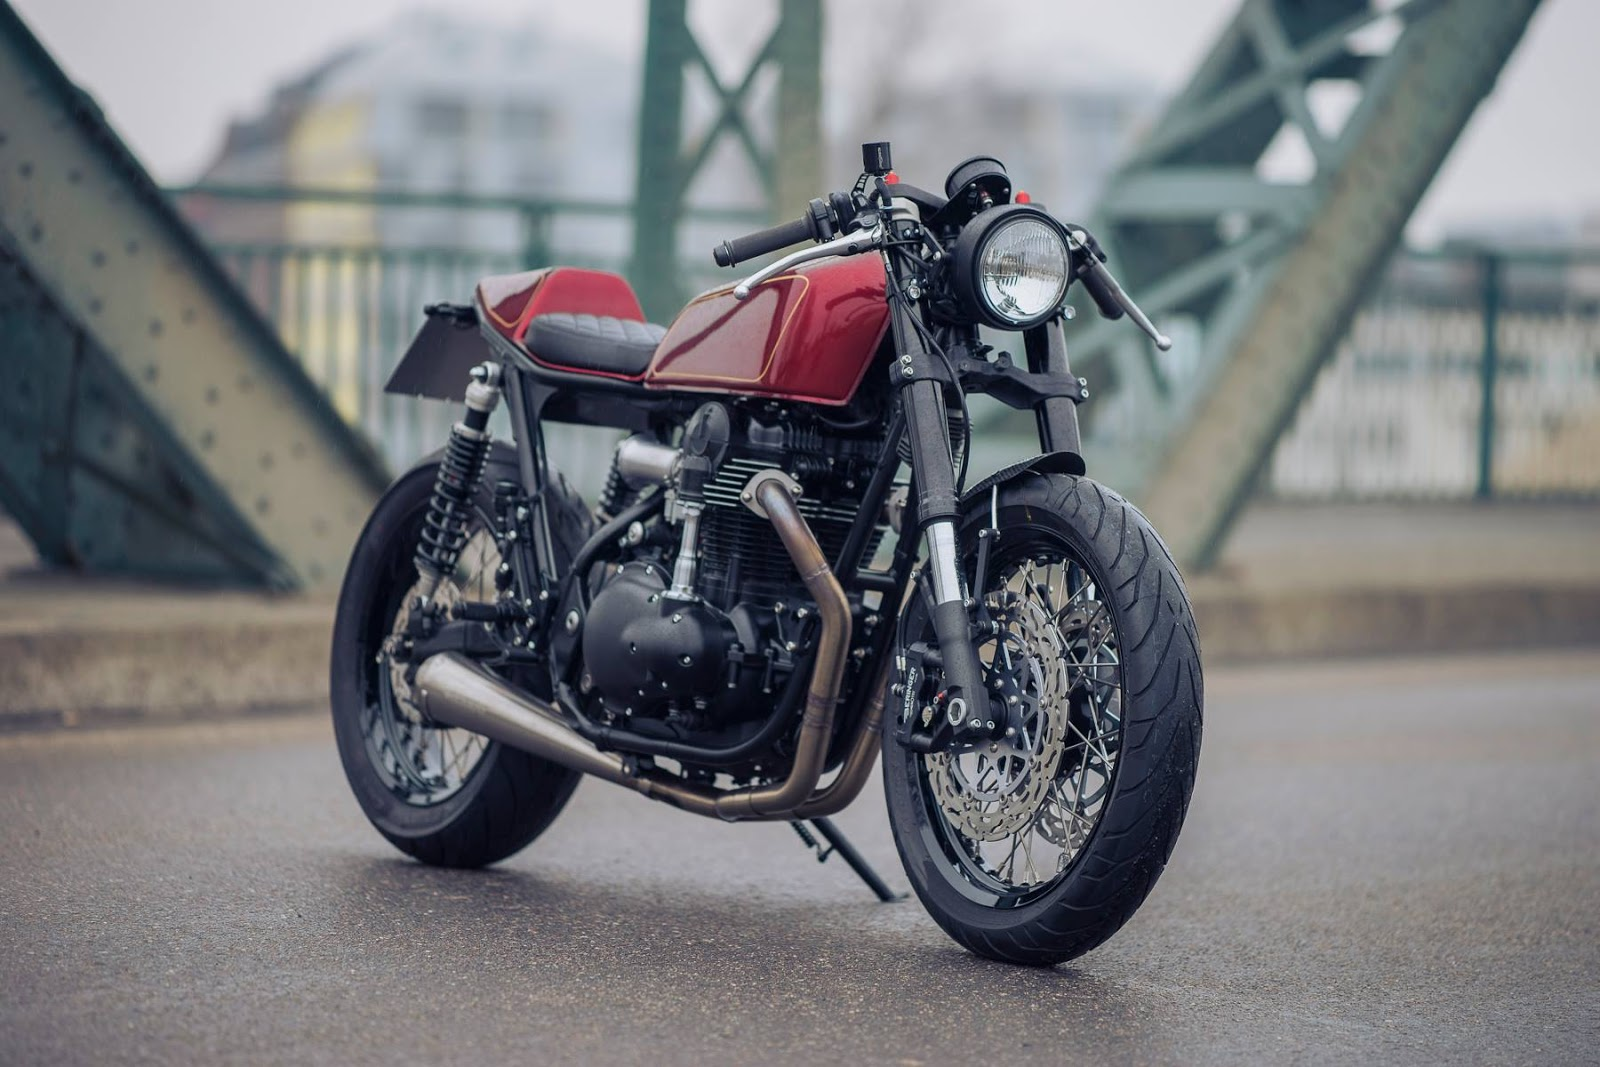 w650 cafe racer rocketgarage cafe racer magazine. Black Bedroom Furniture Sets. Home Design Ideas